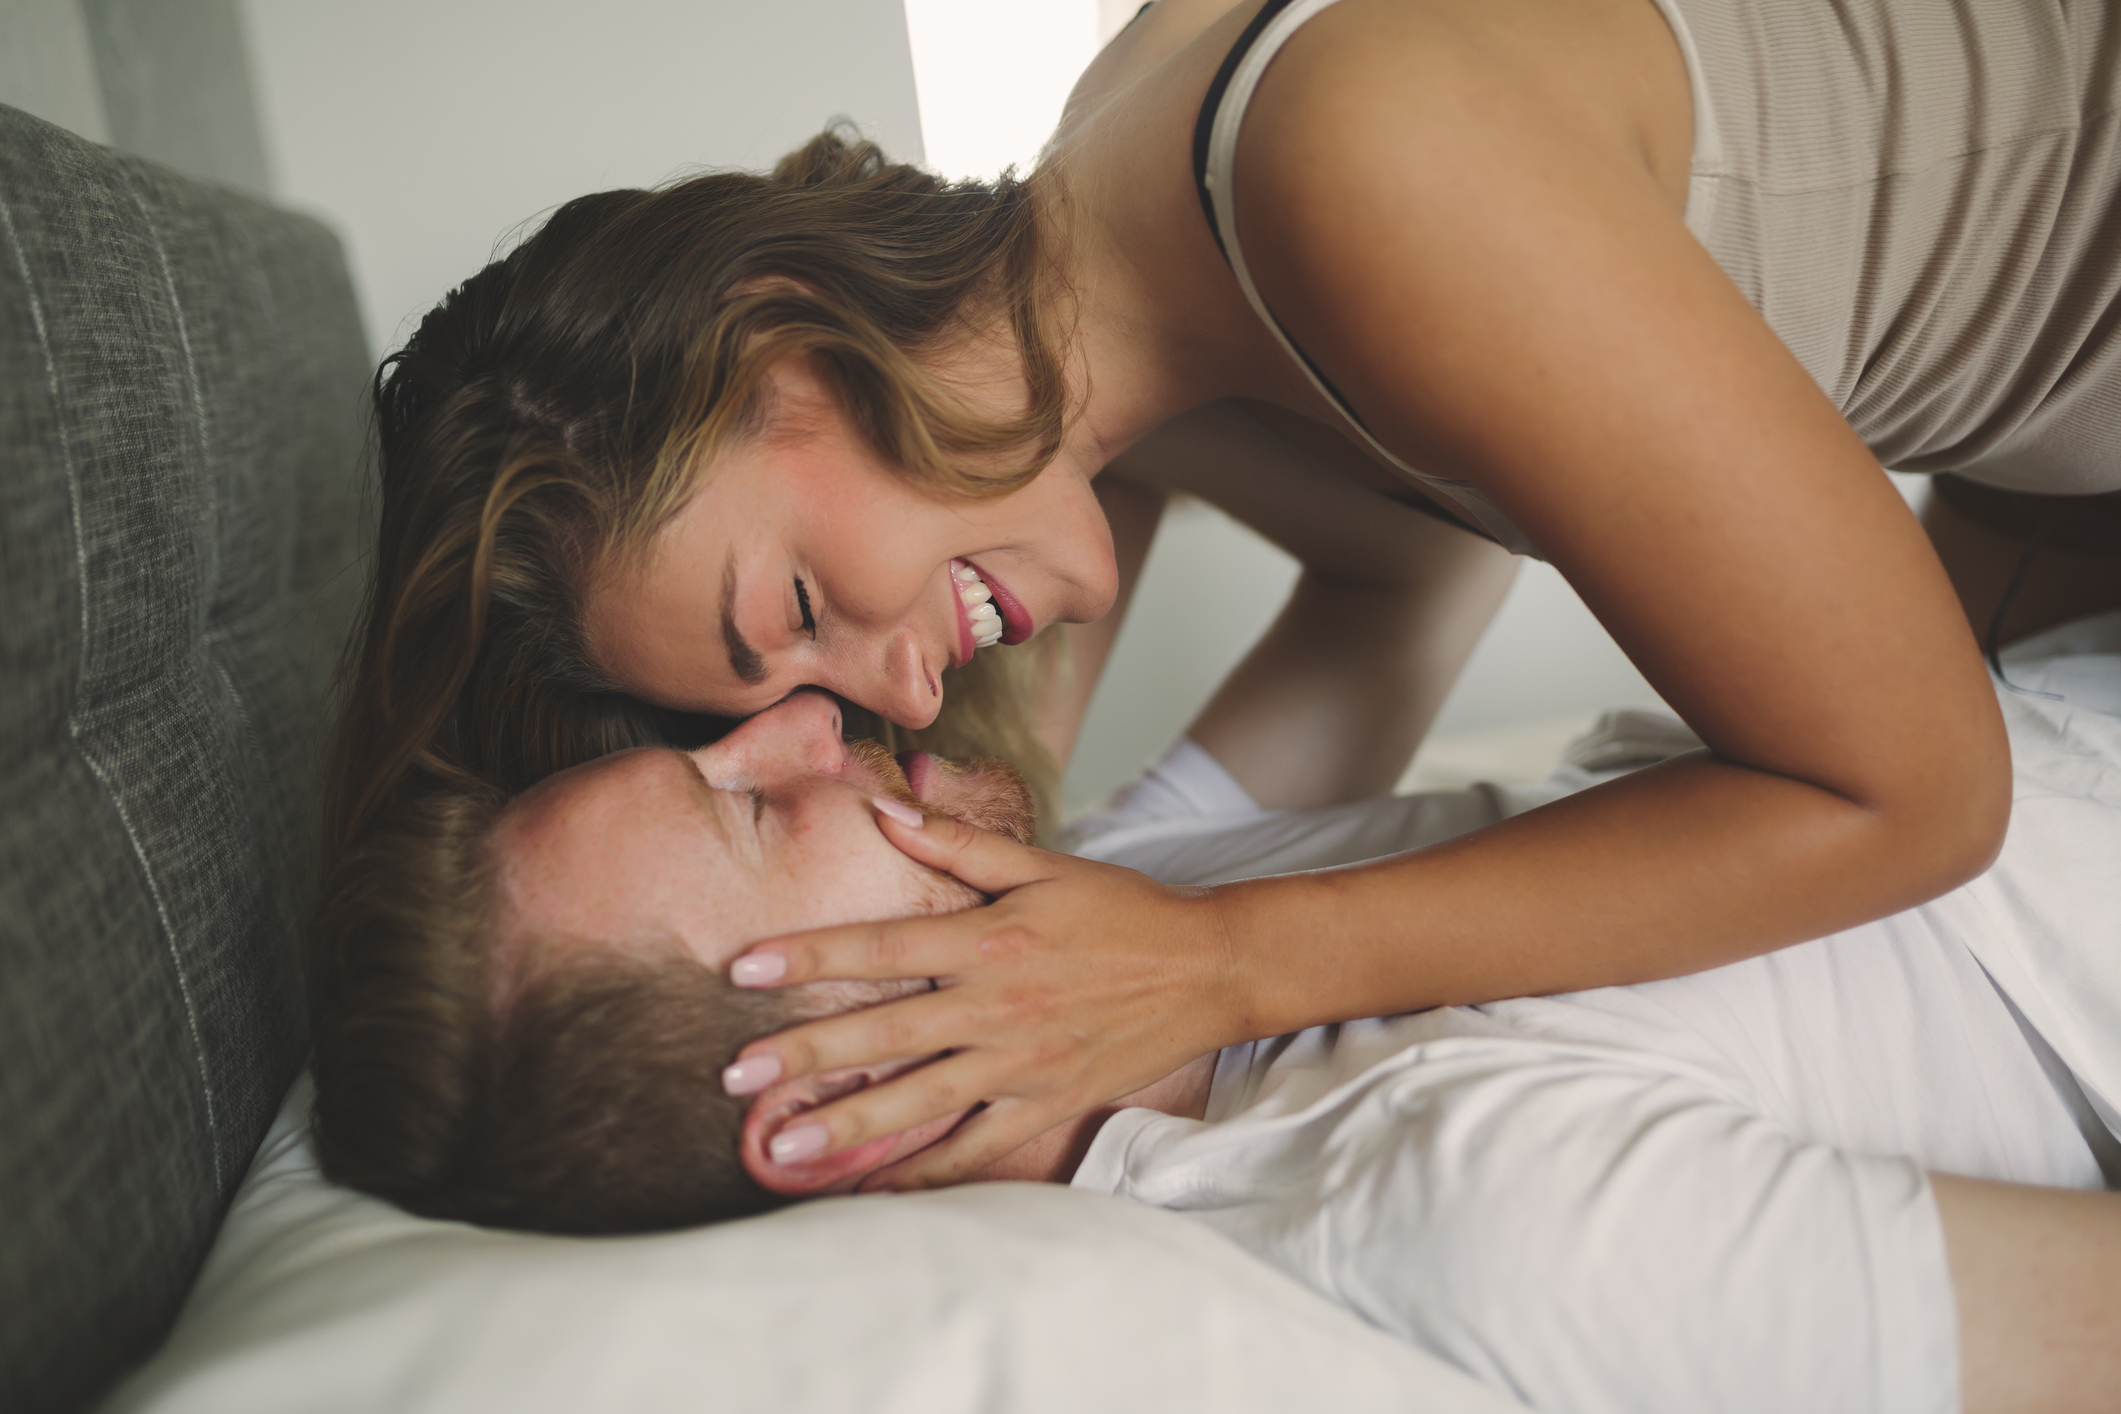 Napa Valley Couples Therapy Center offers the leading treatment modalities for relationship counseling and sex therapy.